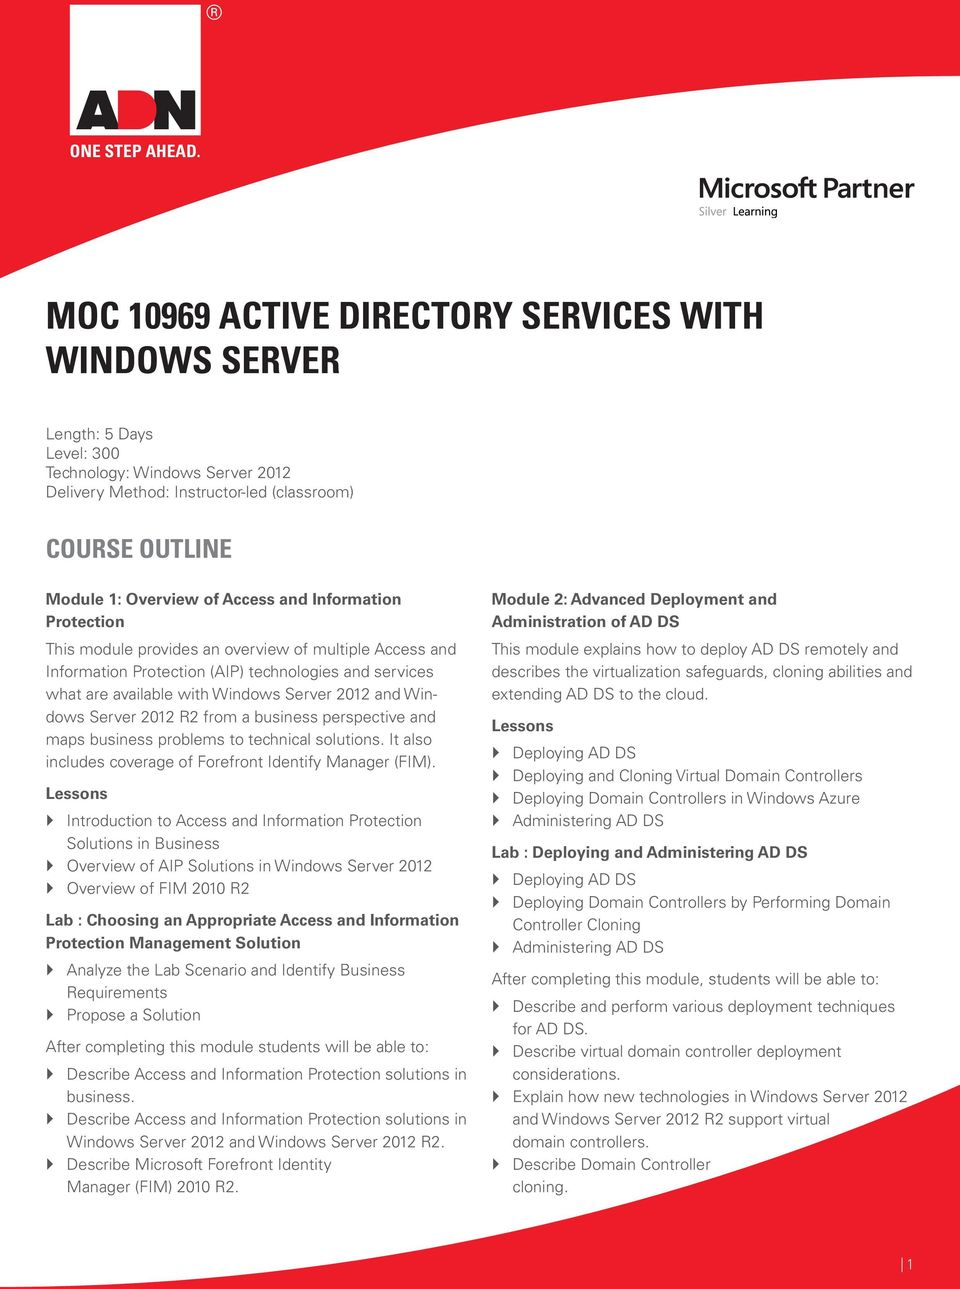 Access and Information Protection This module provides an overview of multiple Access and Information Protection (AIP) technologies and services what are available with Windows Server 2012 and